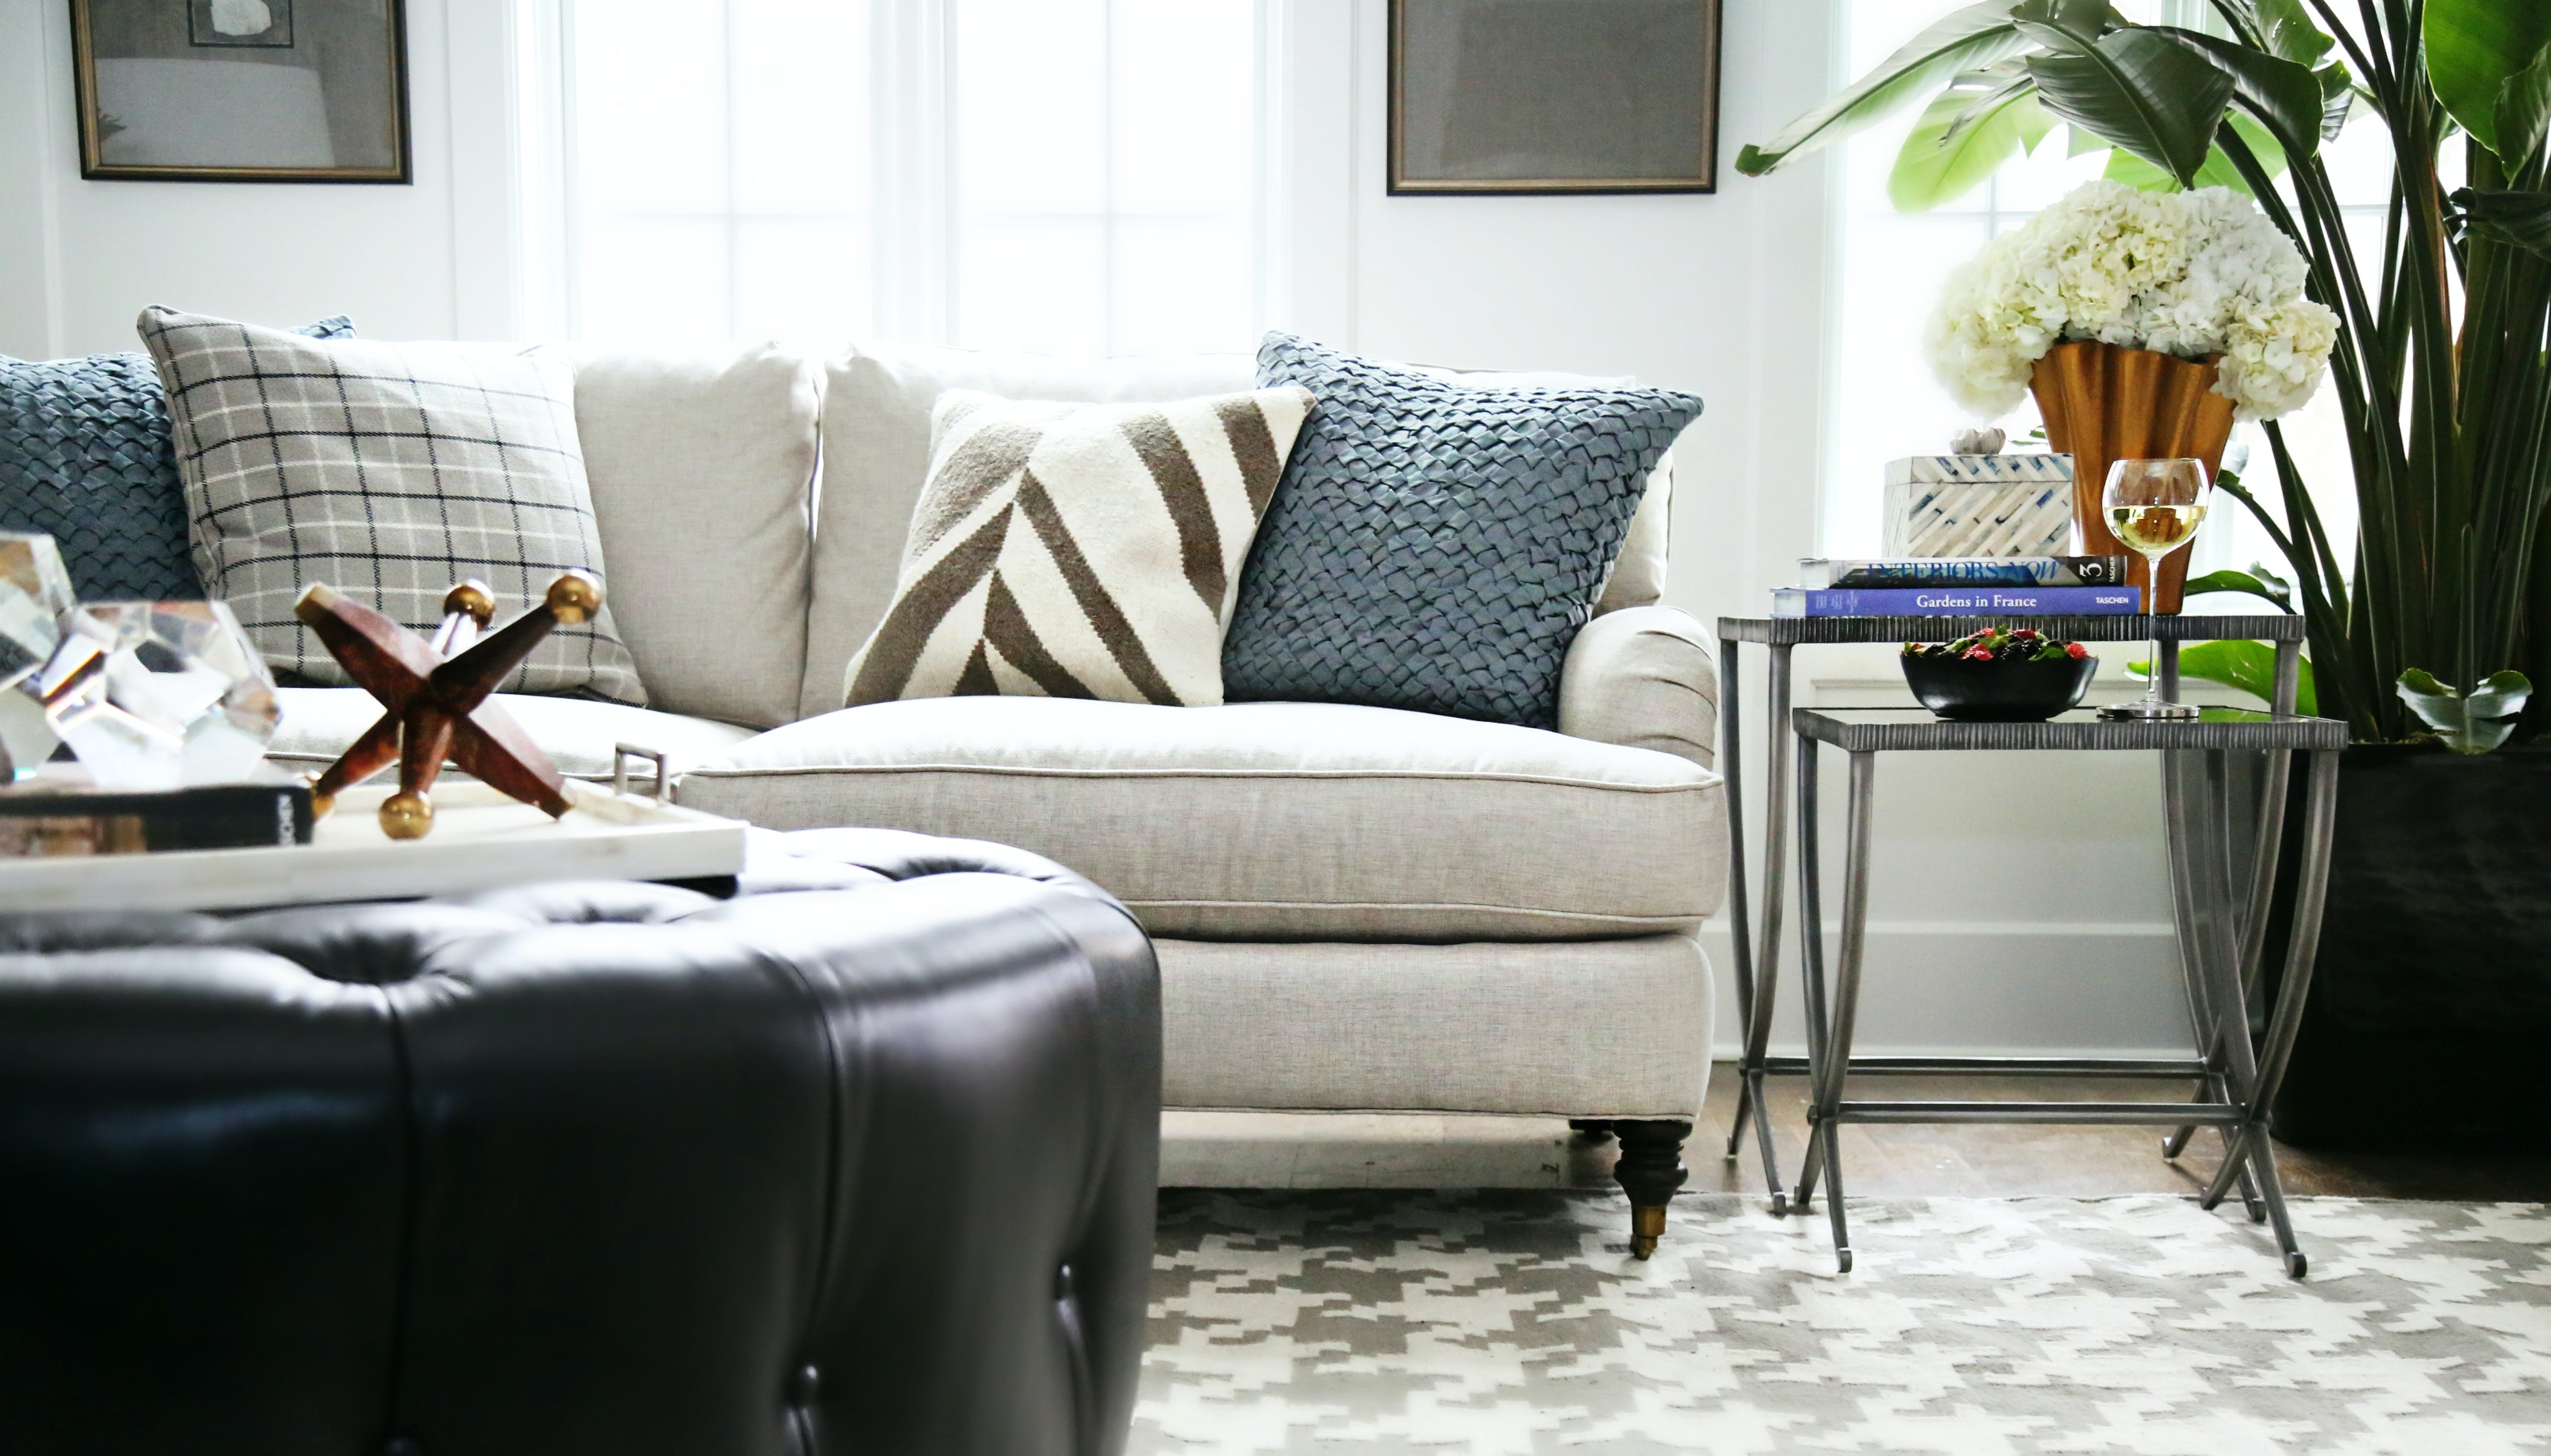 featured product hutton round leather ottoman arbib841 from walter e smithe furniture design